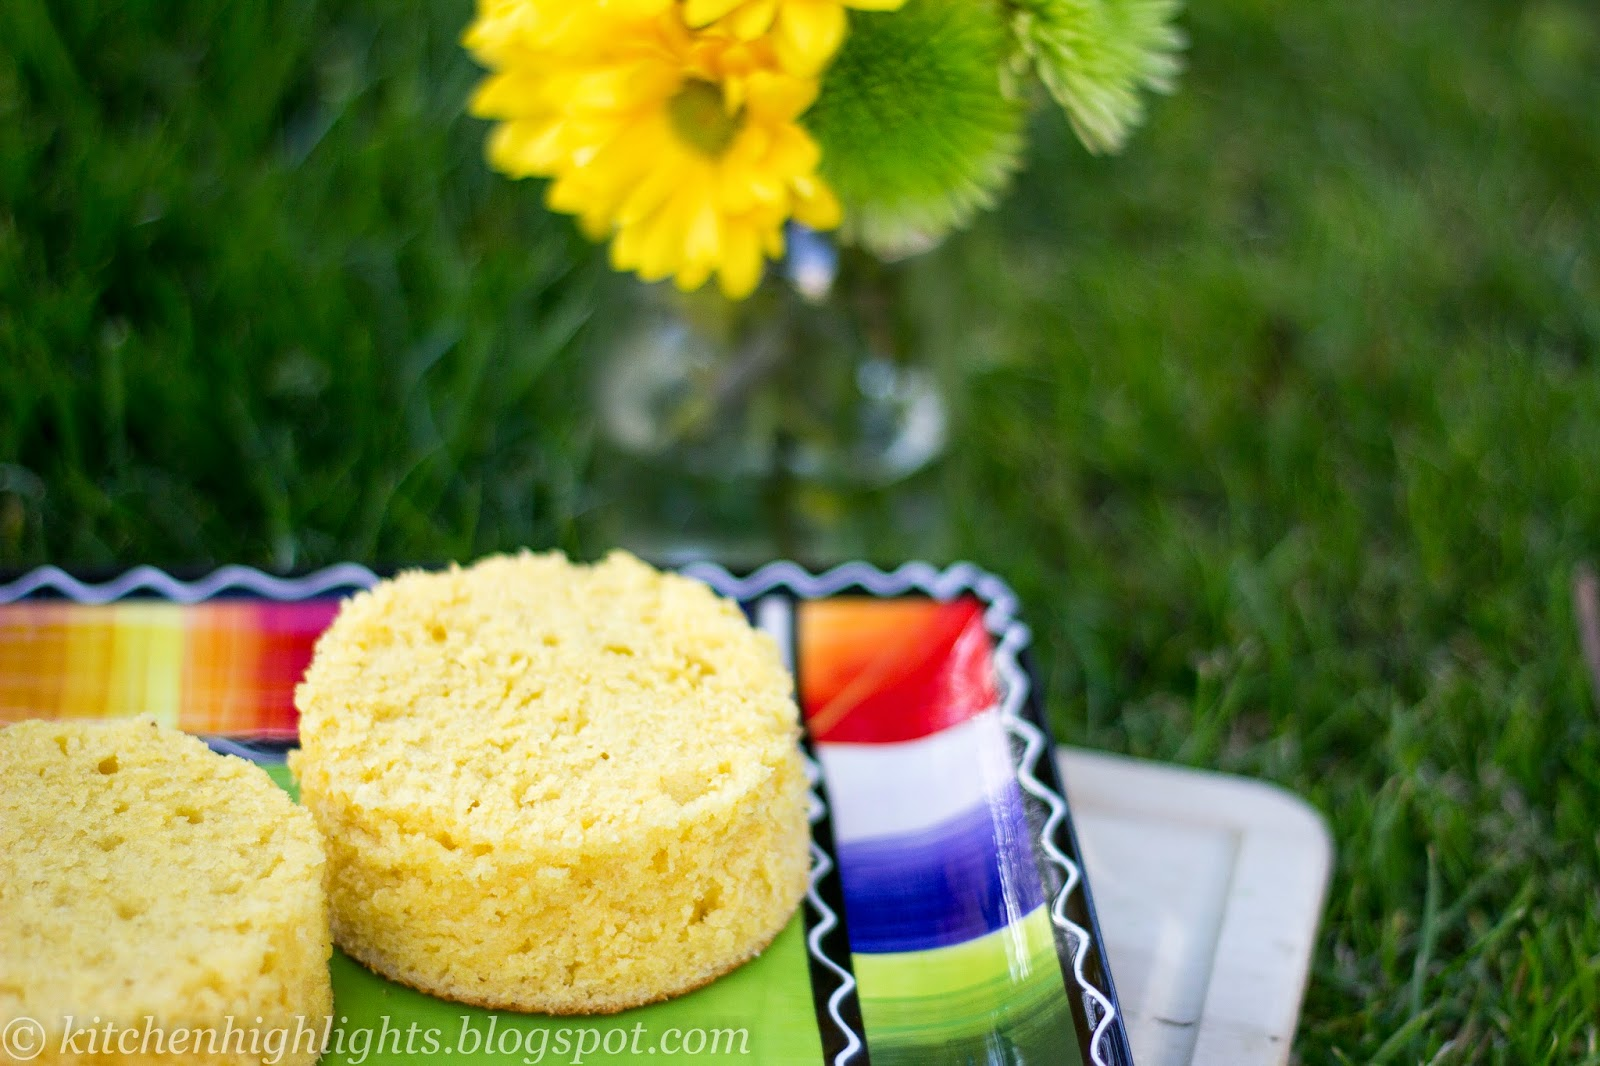 Cornbread is a popular type of bread loved by many people for its texture and aroma